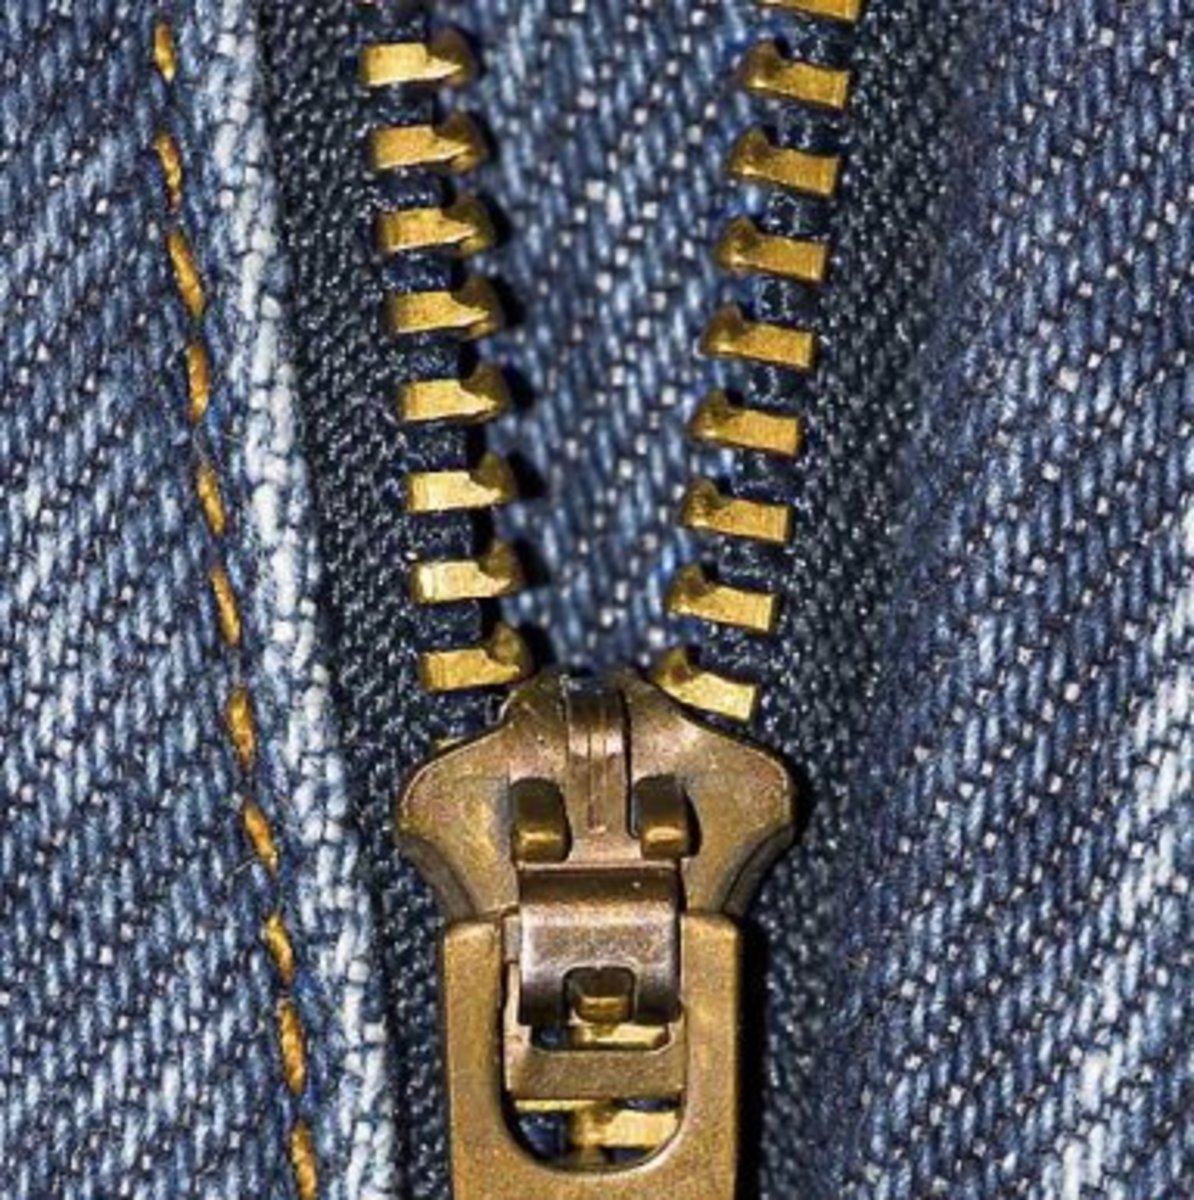 evolution-of-the-zipper-from-neanderthal-man-to-modern-day-uses